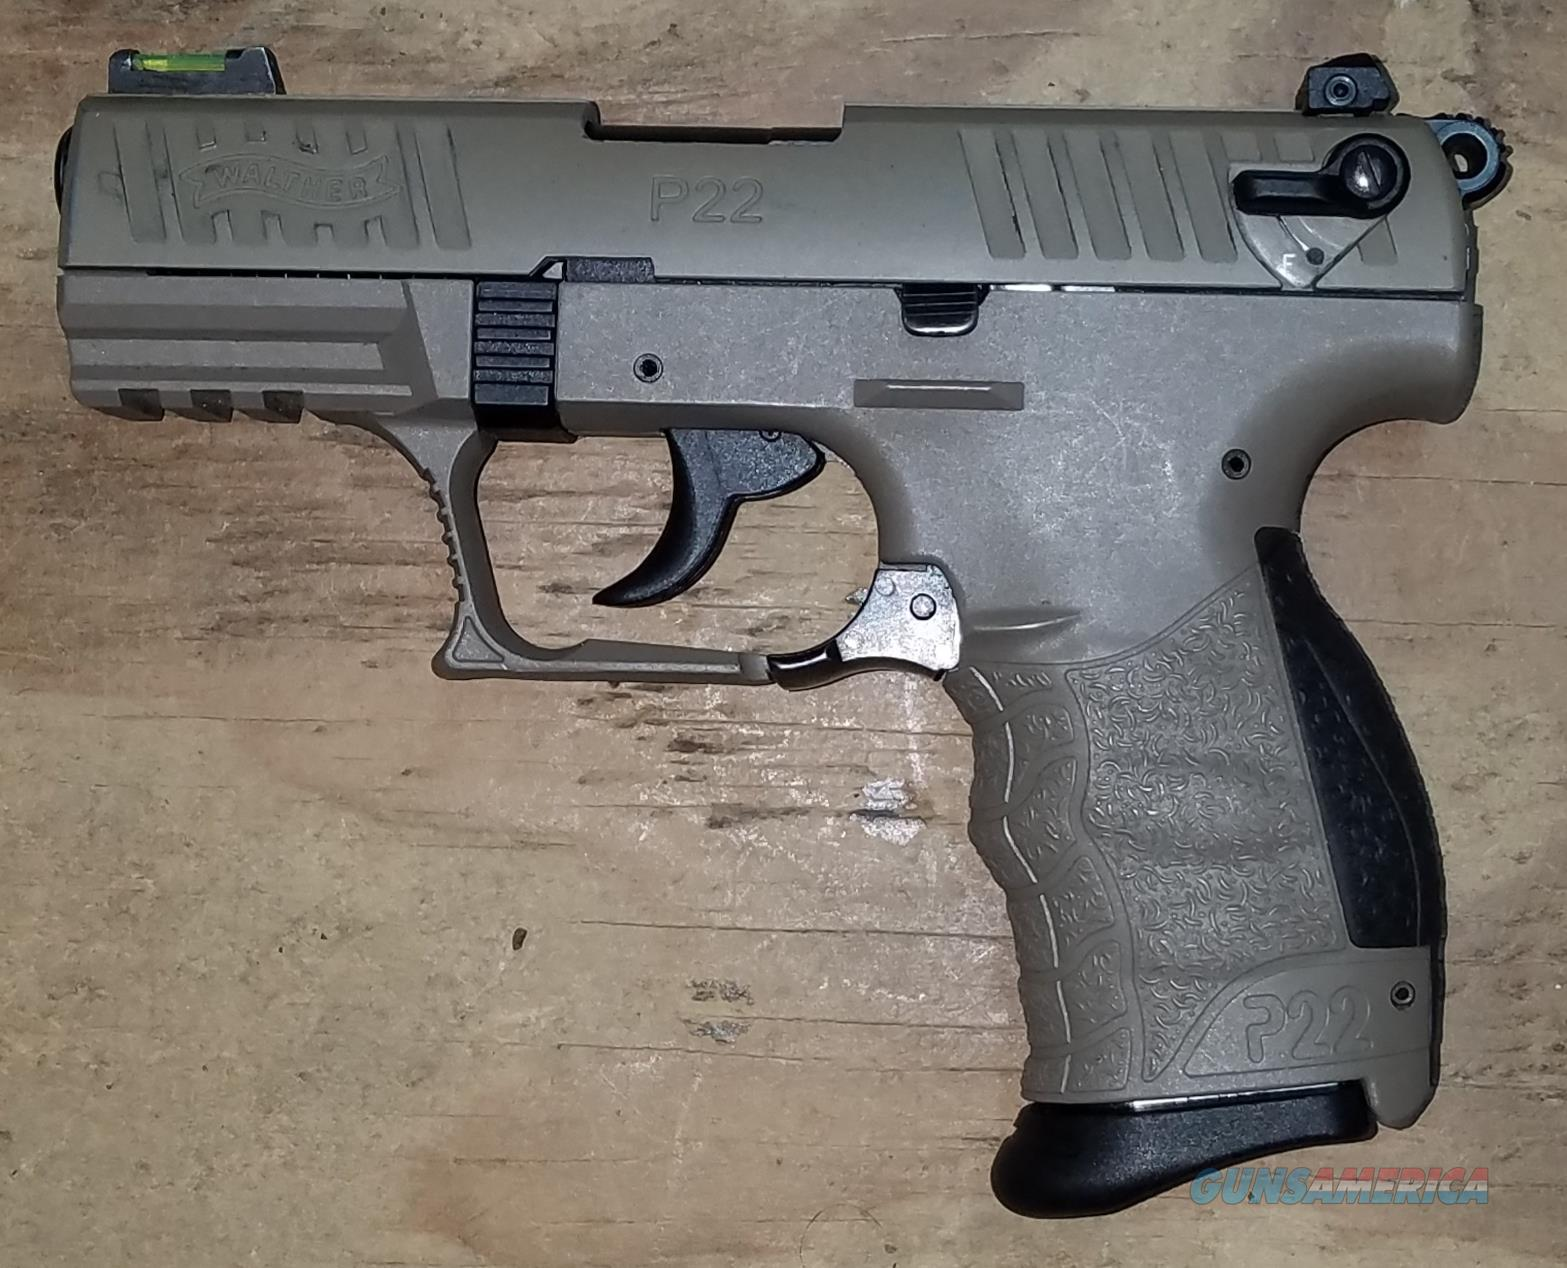 Walther P22 Tactical FDE 512.03.53  .22 LR Pistol 5120353  Guns > Pistols > Walther Pistols > Post WWII > P22